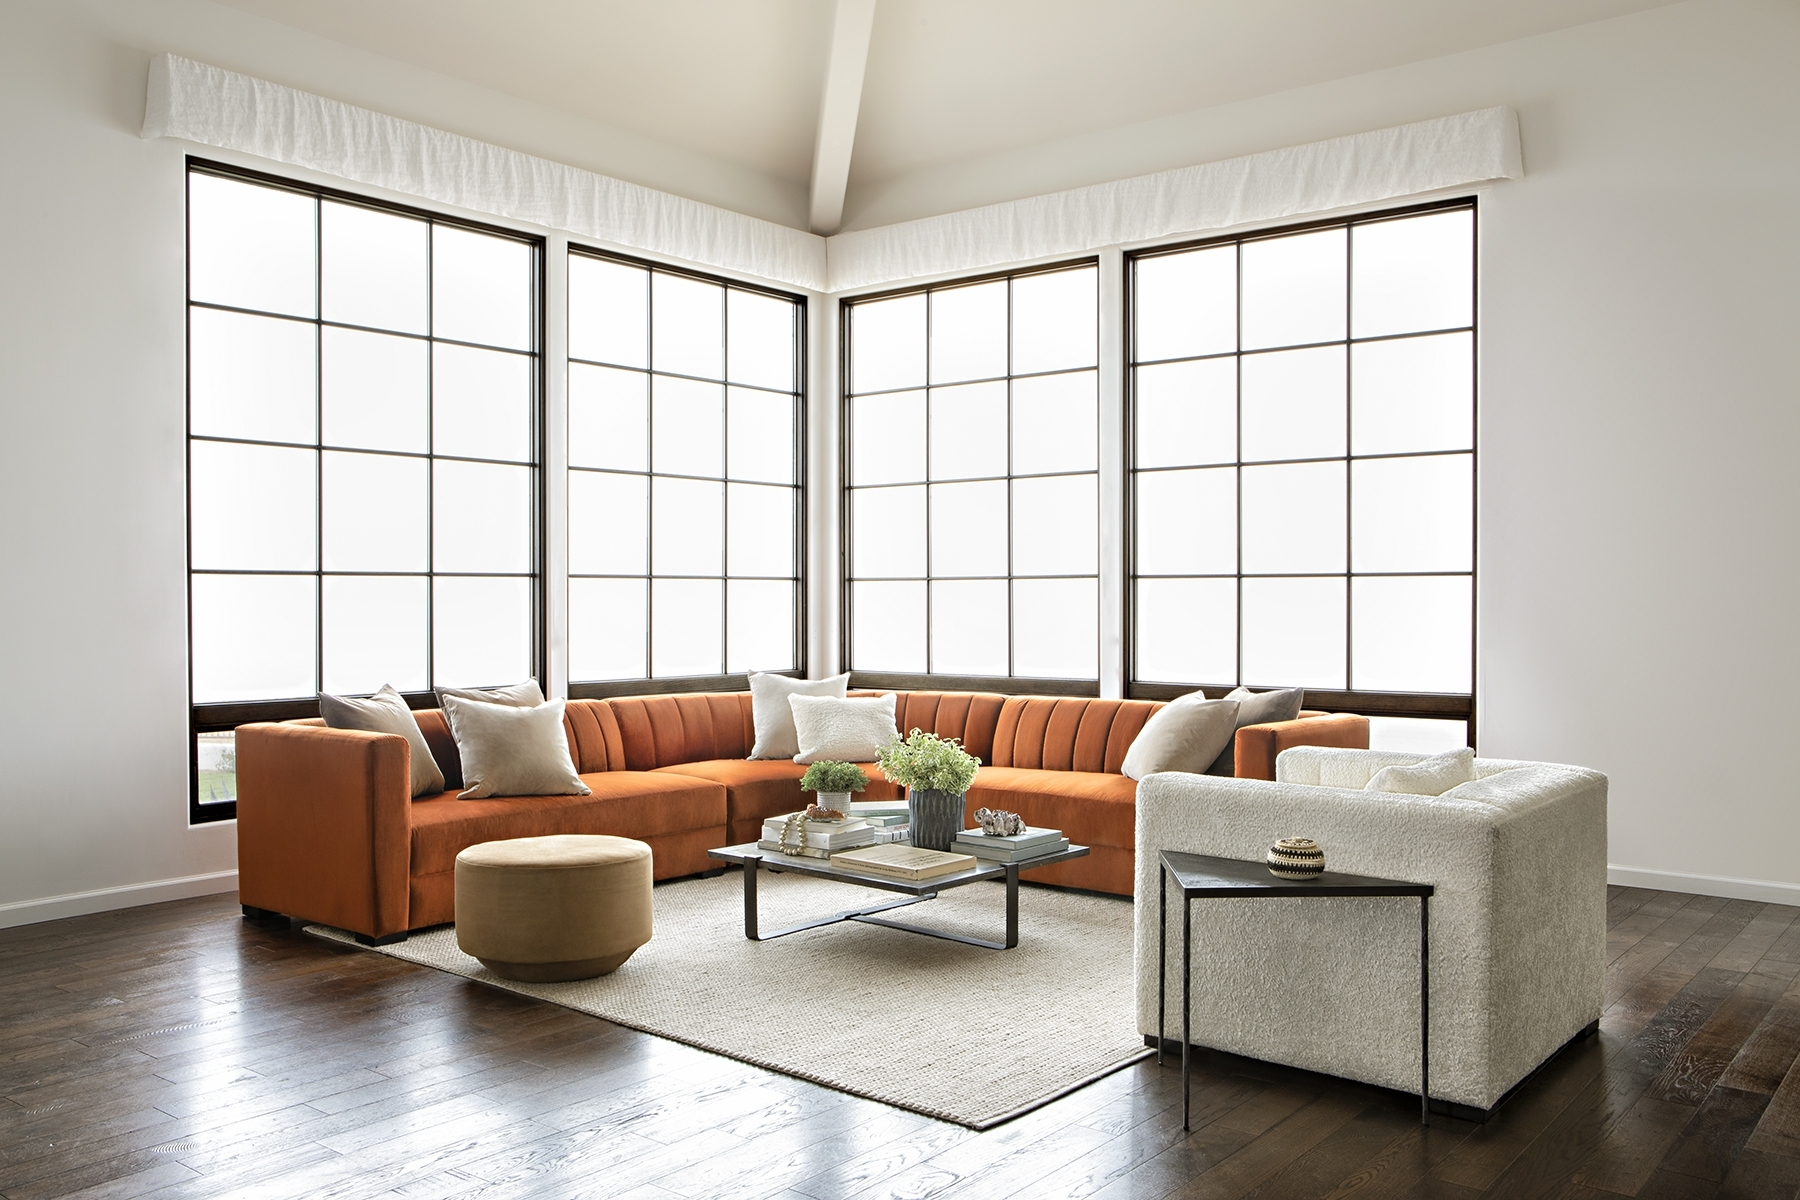 Nate Berkus & Jeremiah Brent's Newest Affordable Collection | Rue Intended For Whitley 3 Piece Sectionals By Nate Berkus And Jeremiah Brent (Image 6 of 25)